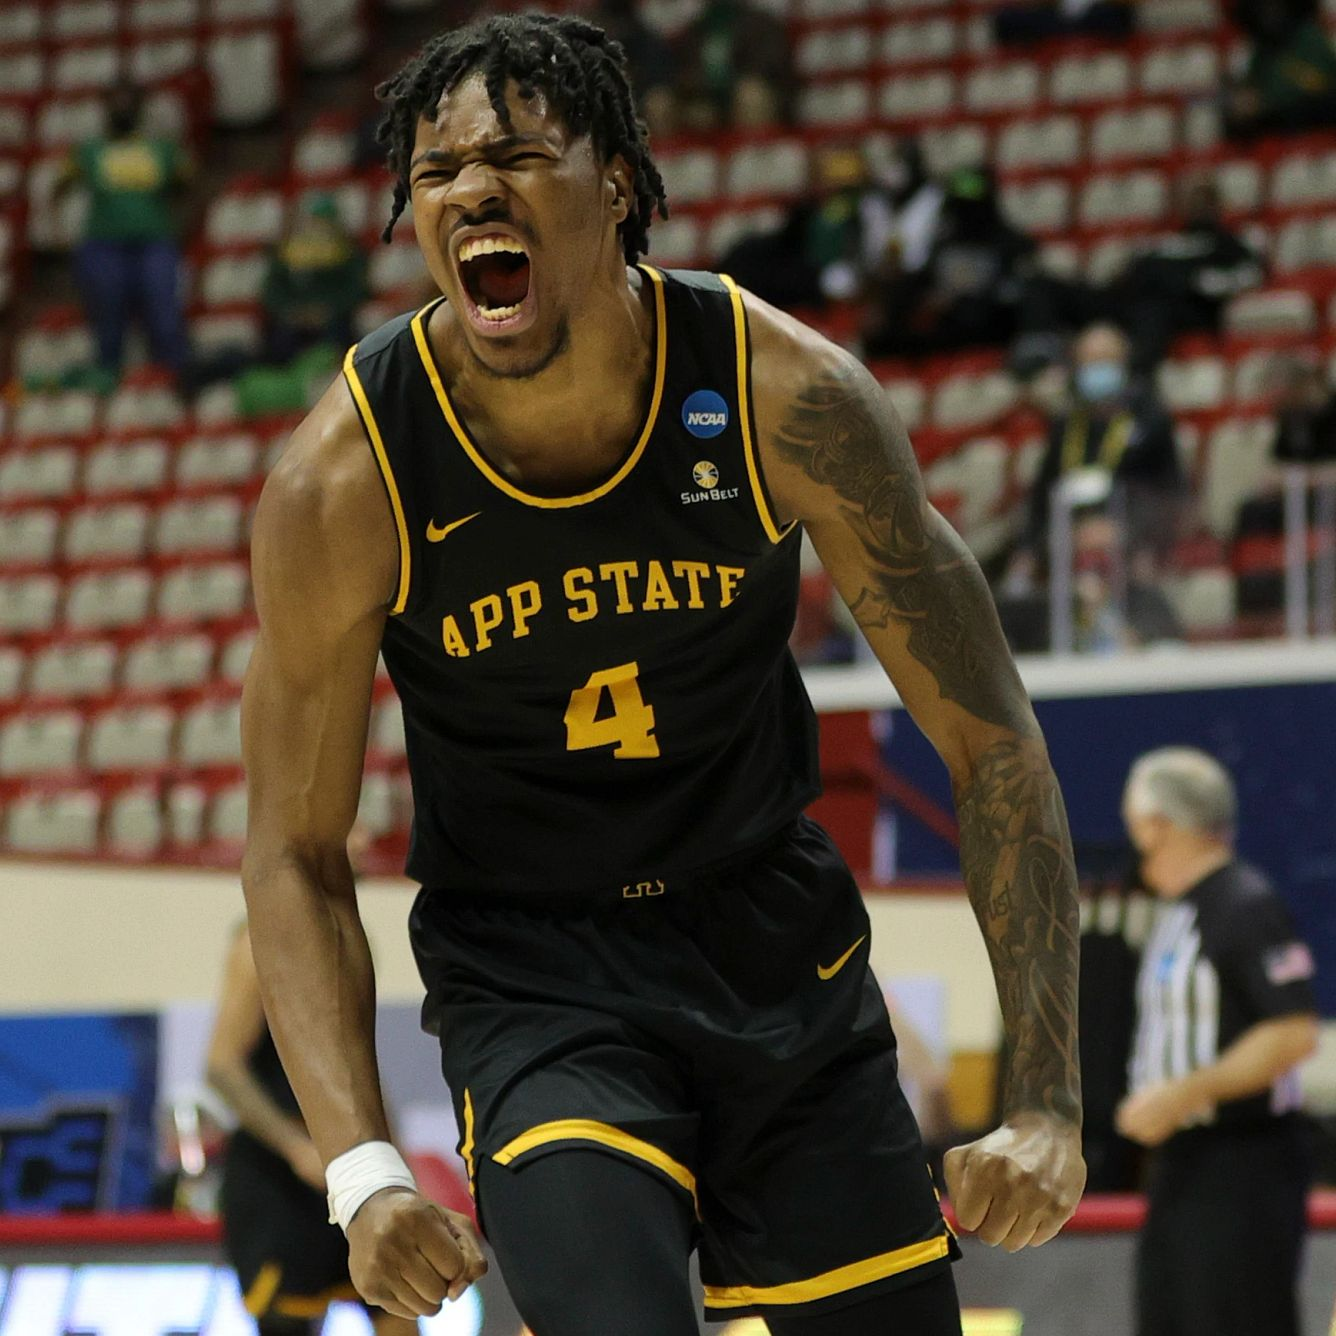 An Appalachian State players celebrates with a yell